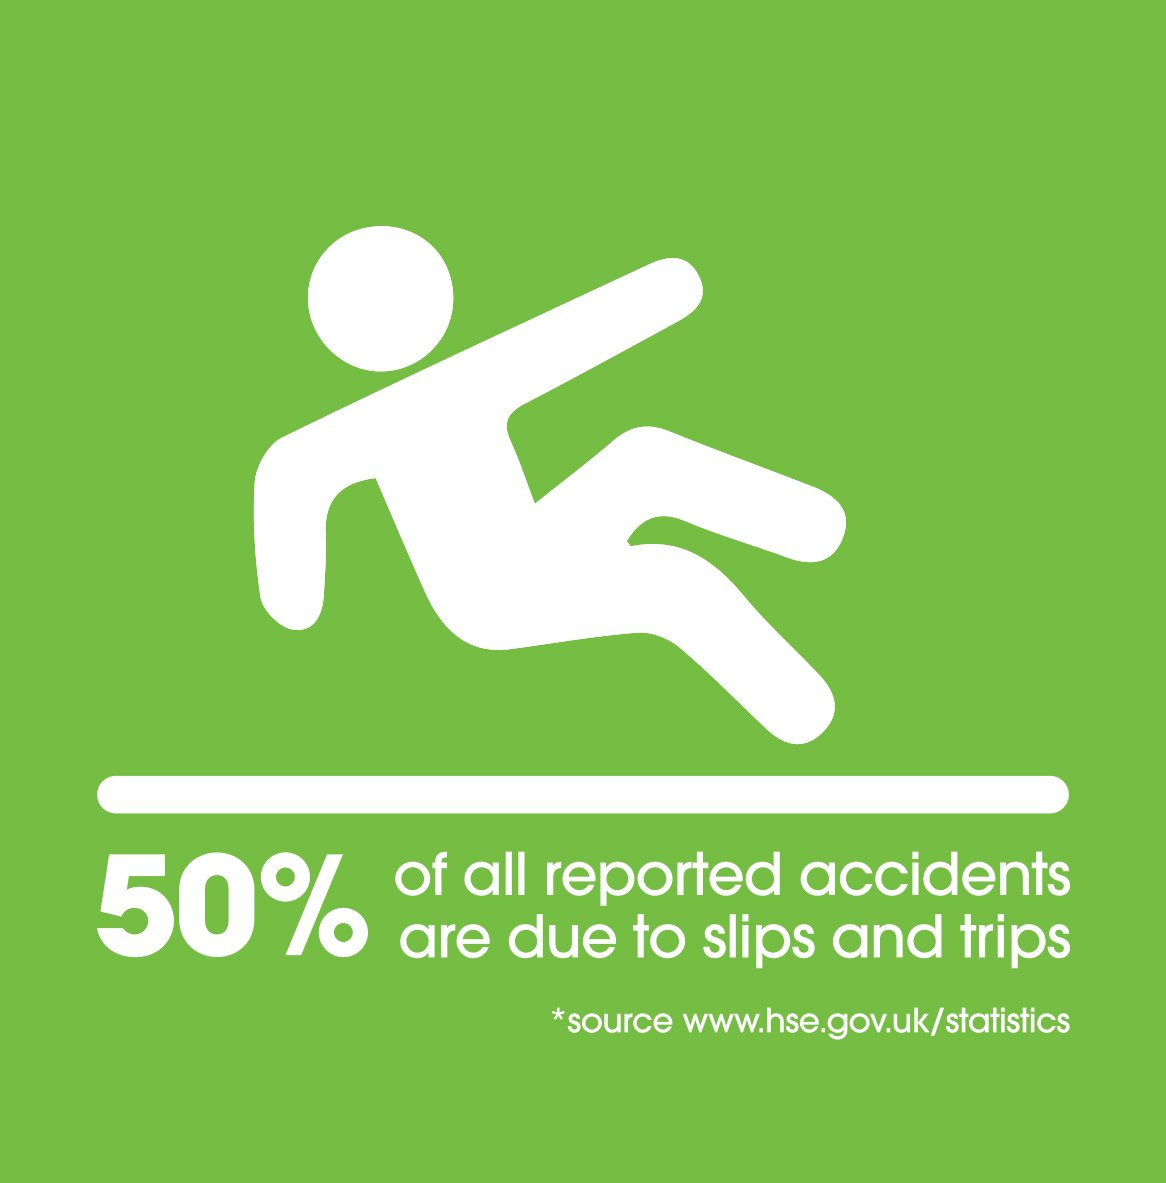 50% of reported accidents due to slips and trips